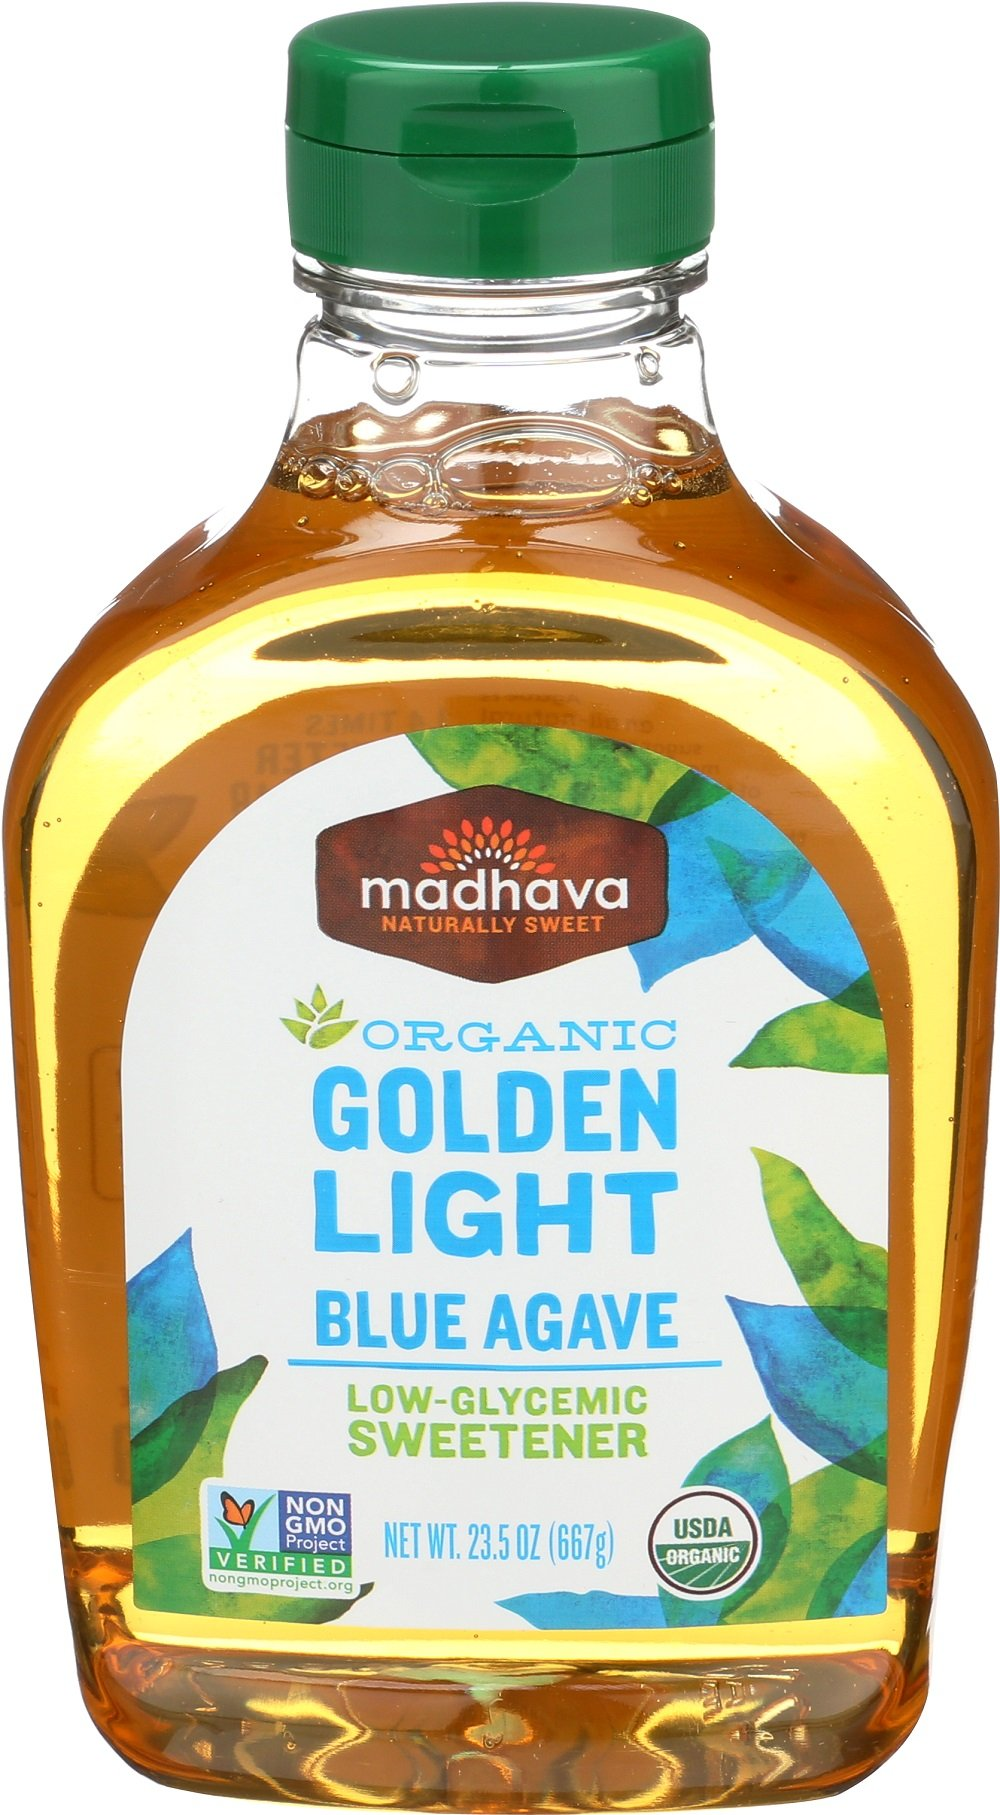 Madhava Naturally Sweet Organic Blue Agave Low-Glycemic Sweetener, Golden Light, 23.5 Ounce